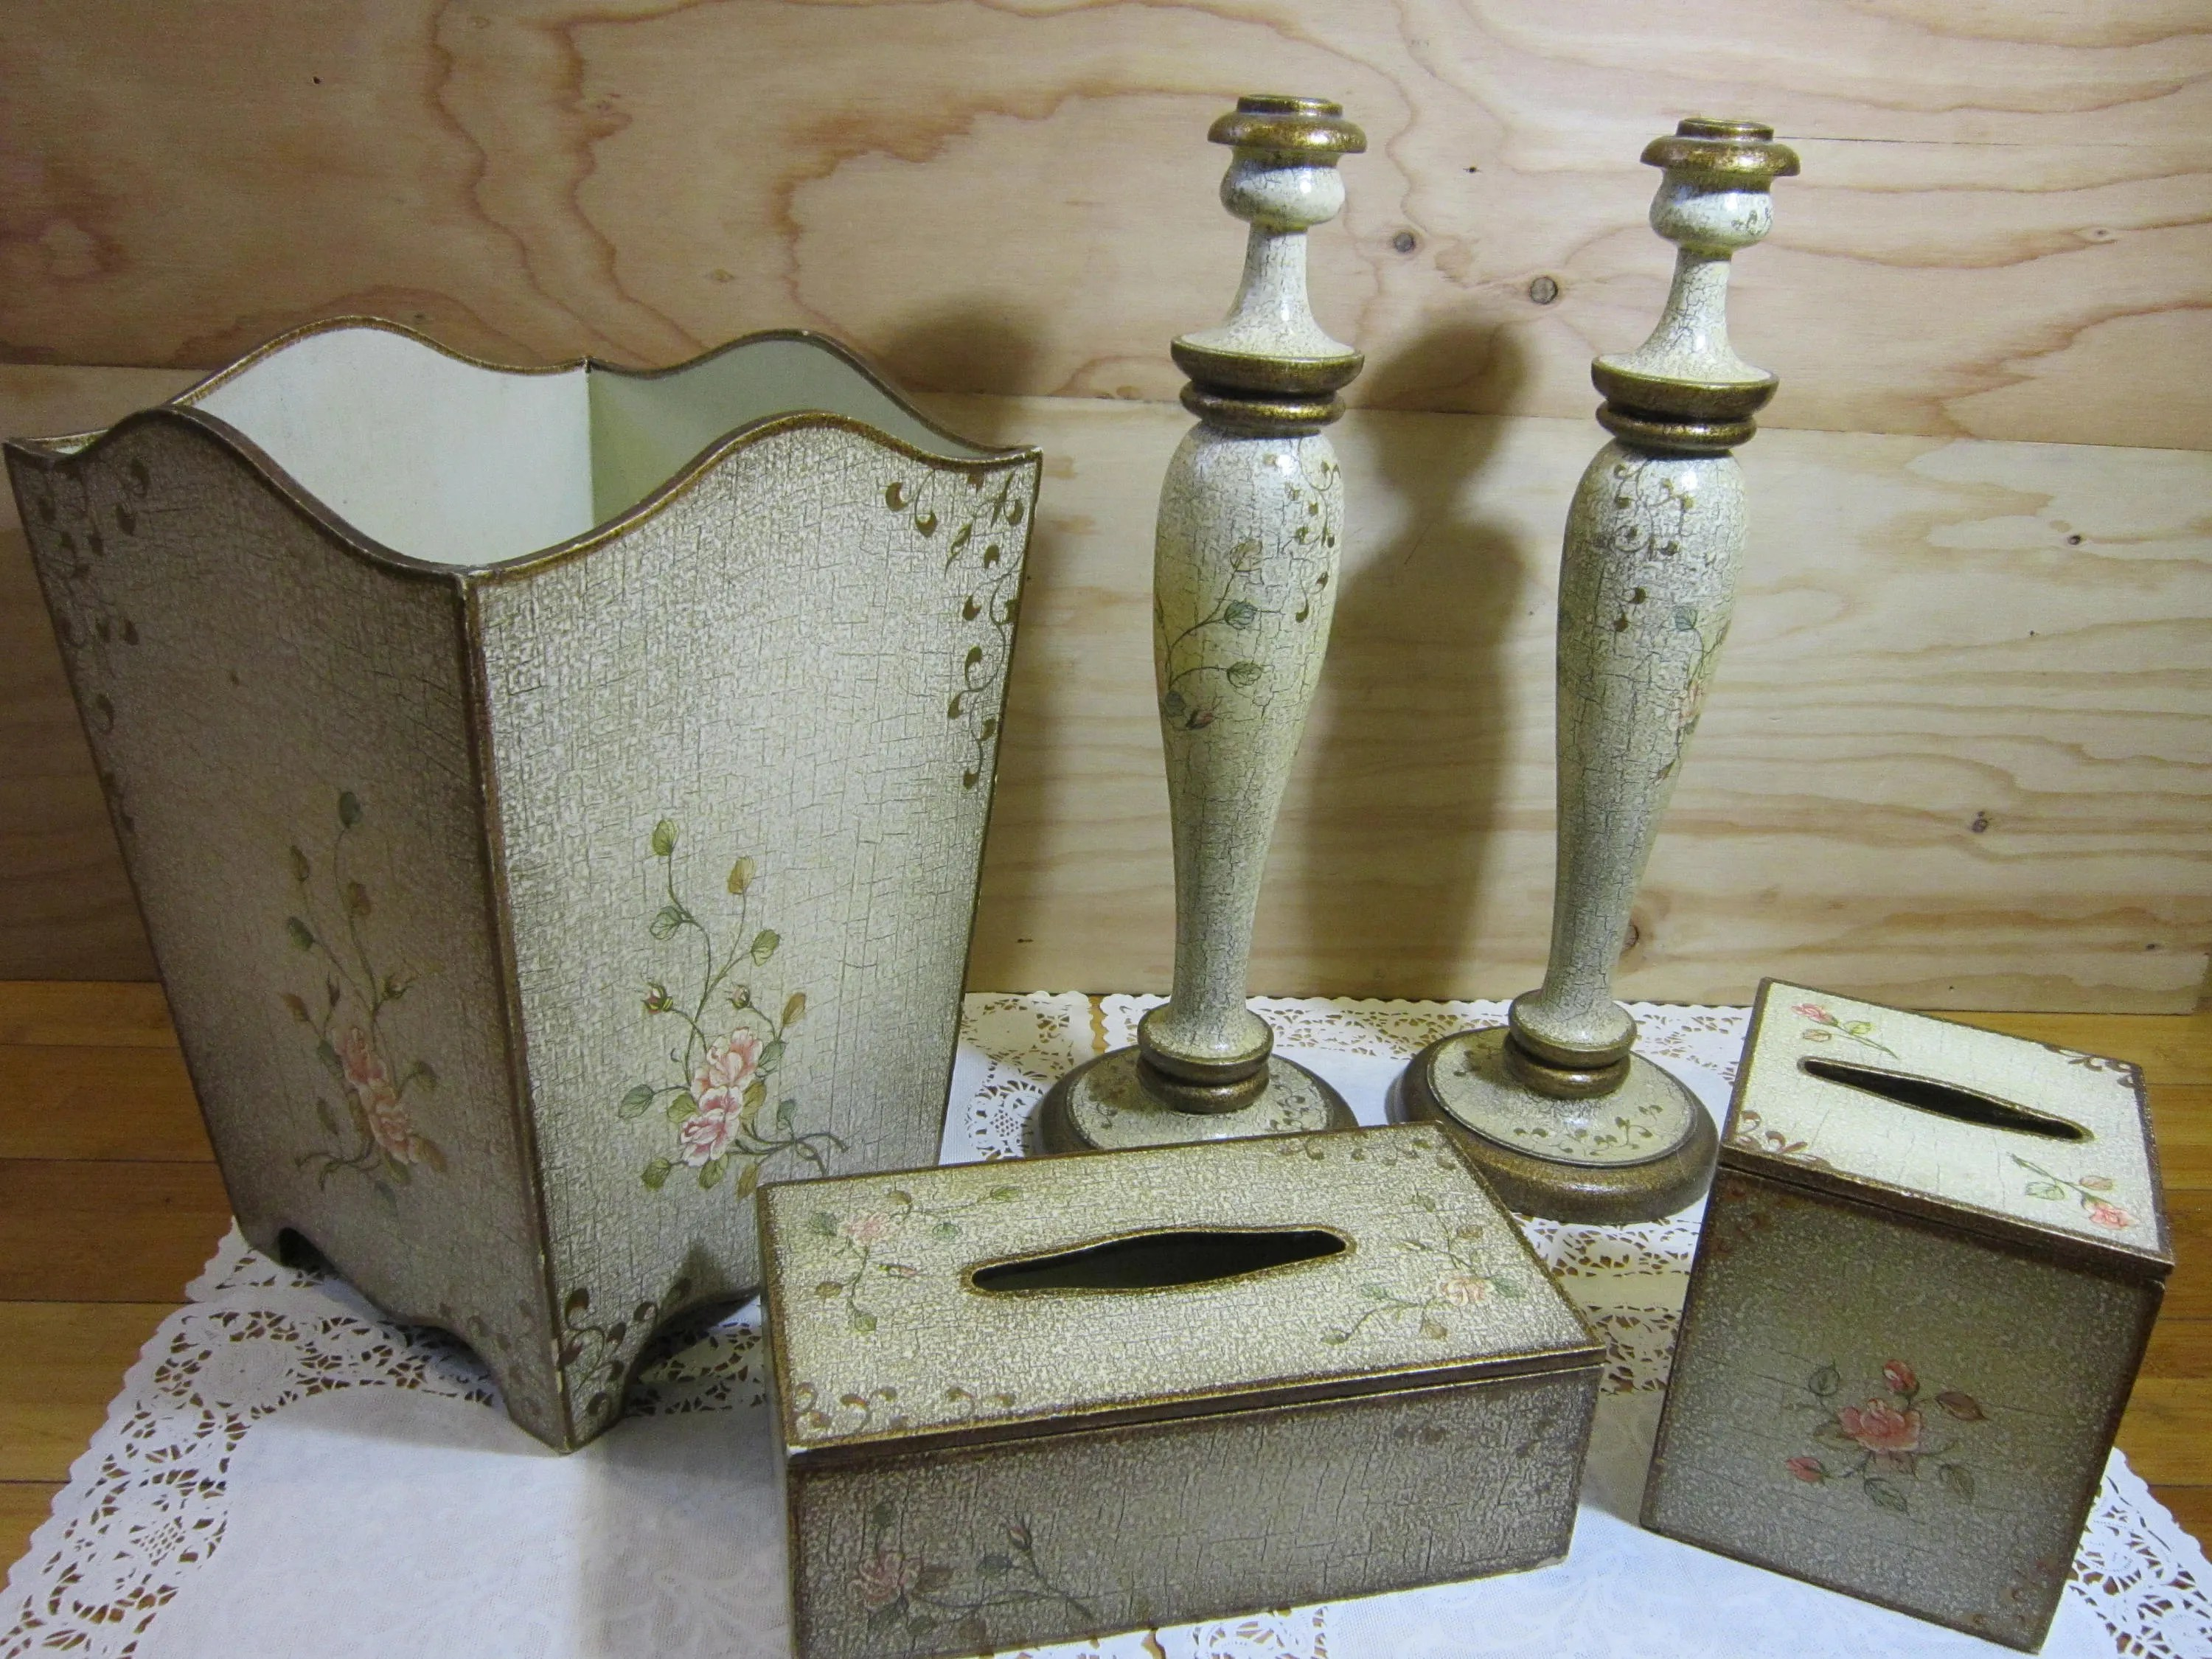 Shabby Chic Waste Baskets Set Of Vintage Shabby Chic Bathroom Decor Wood Waste Basket Wood Tissue Box Covers Wood Candle Holders